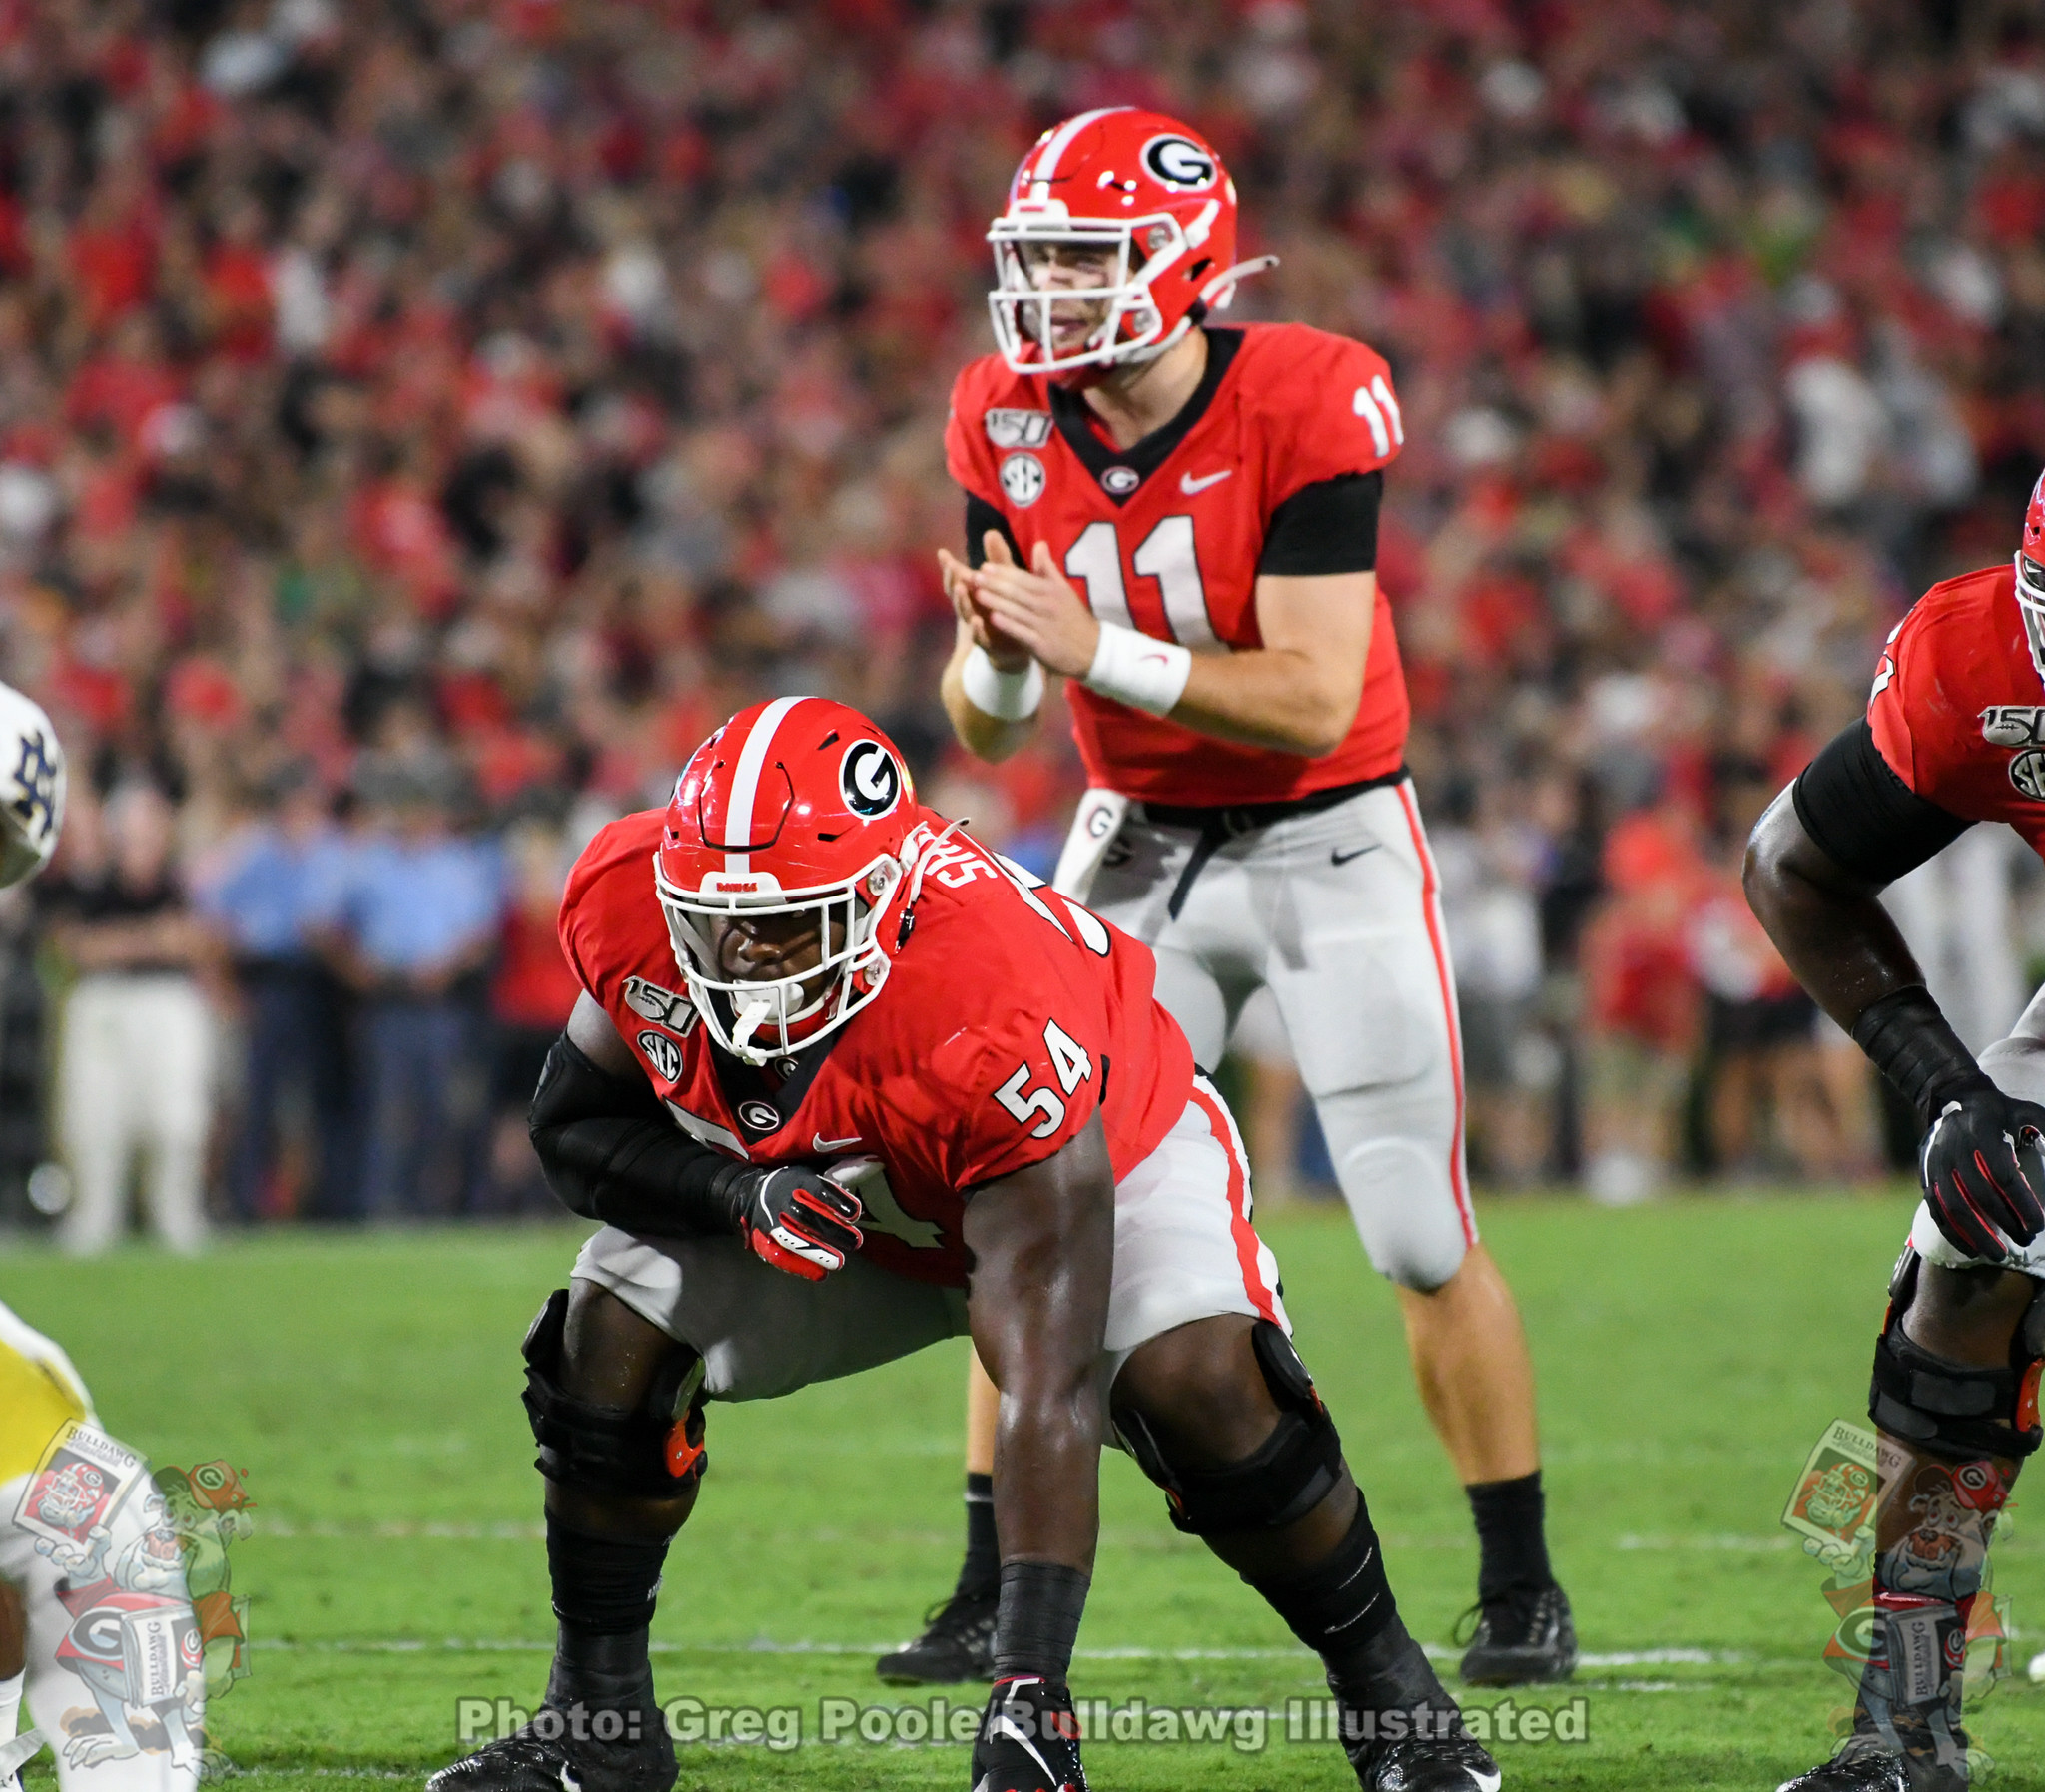 Georgia vs. Notre Dame 2019 - Second Quarter - September 21, 2019